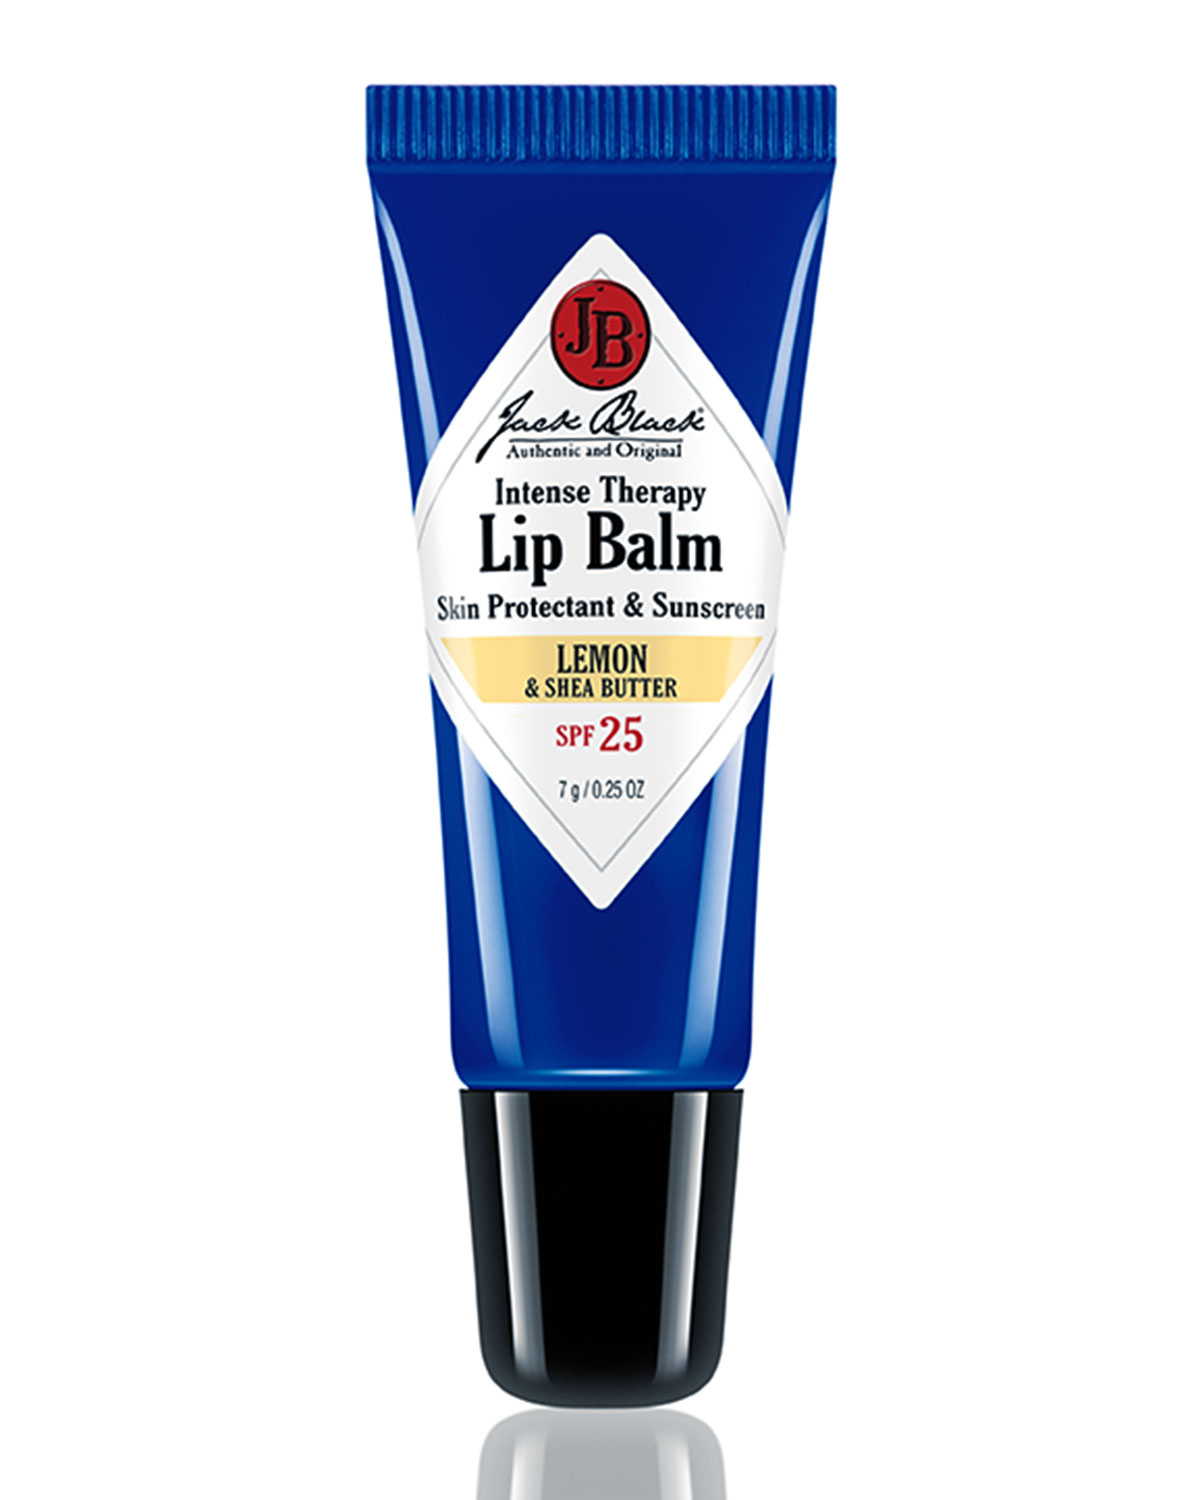 Lemon & Shea Butter Intense Therapy Lip Balm SPF 25, 0.25 oz.